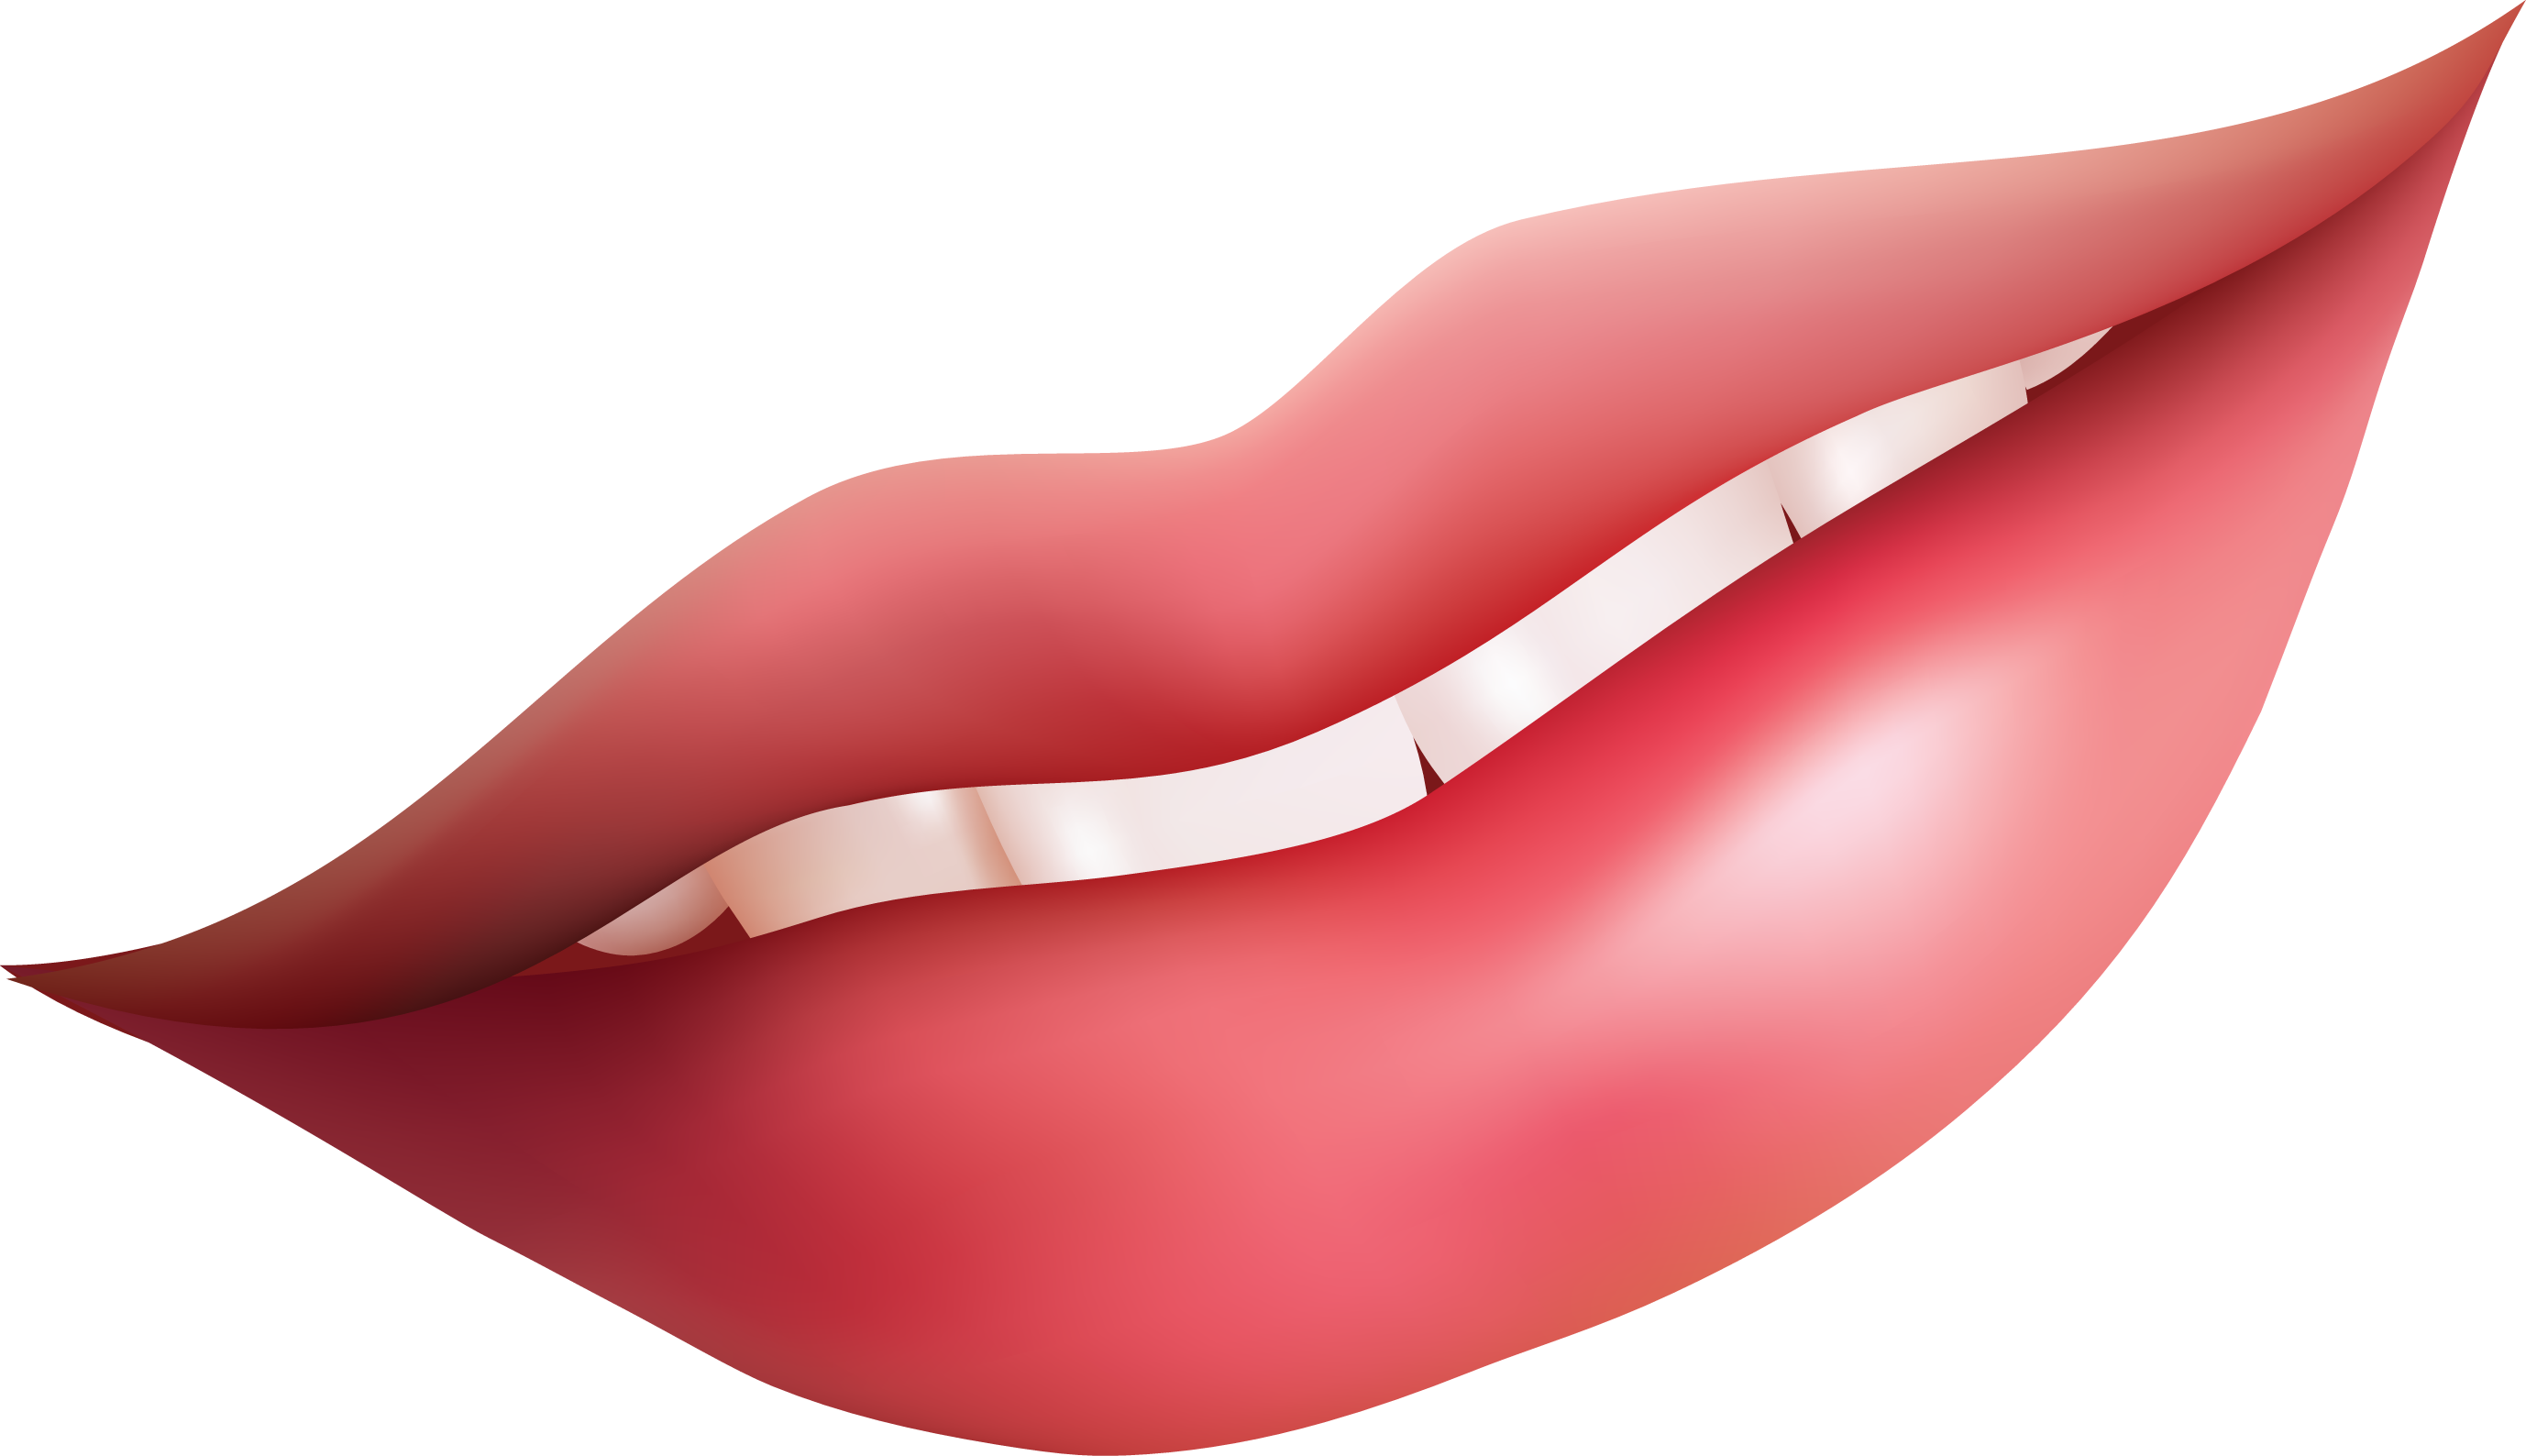 Joker clipart lip Lips PNG download kiss PNG